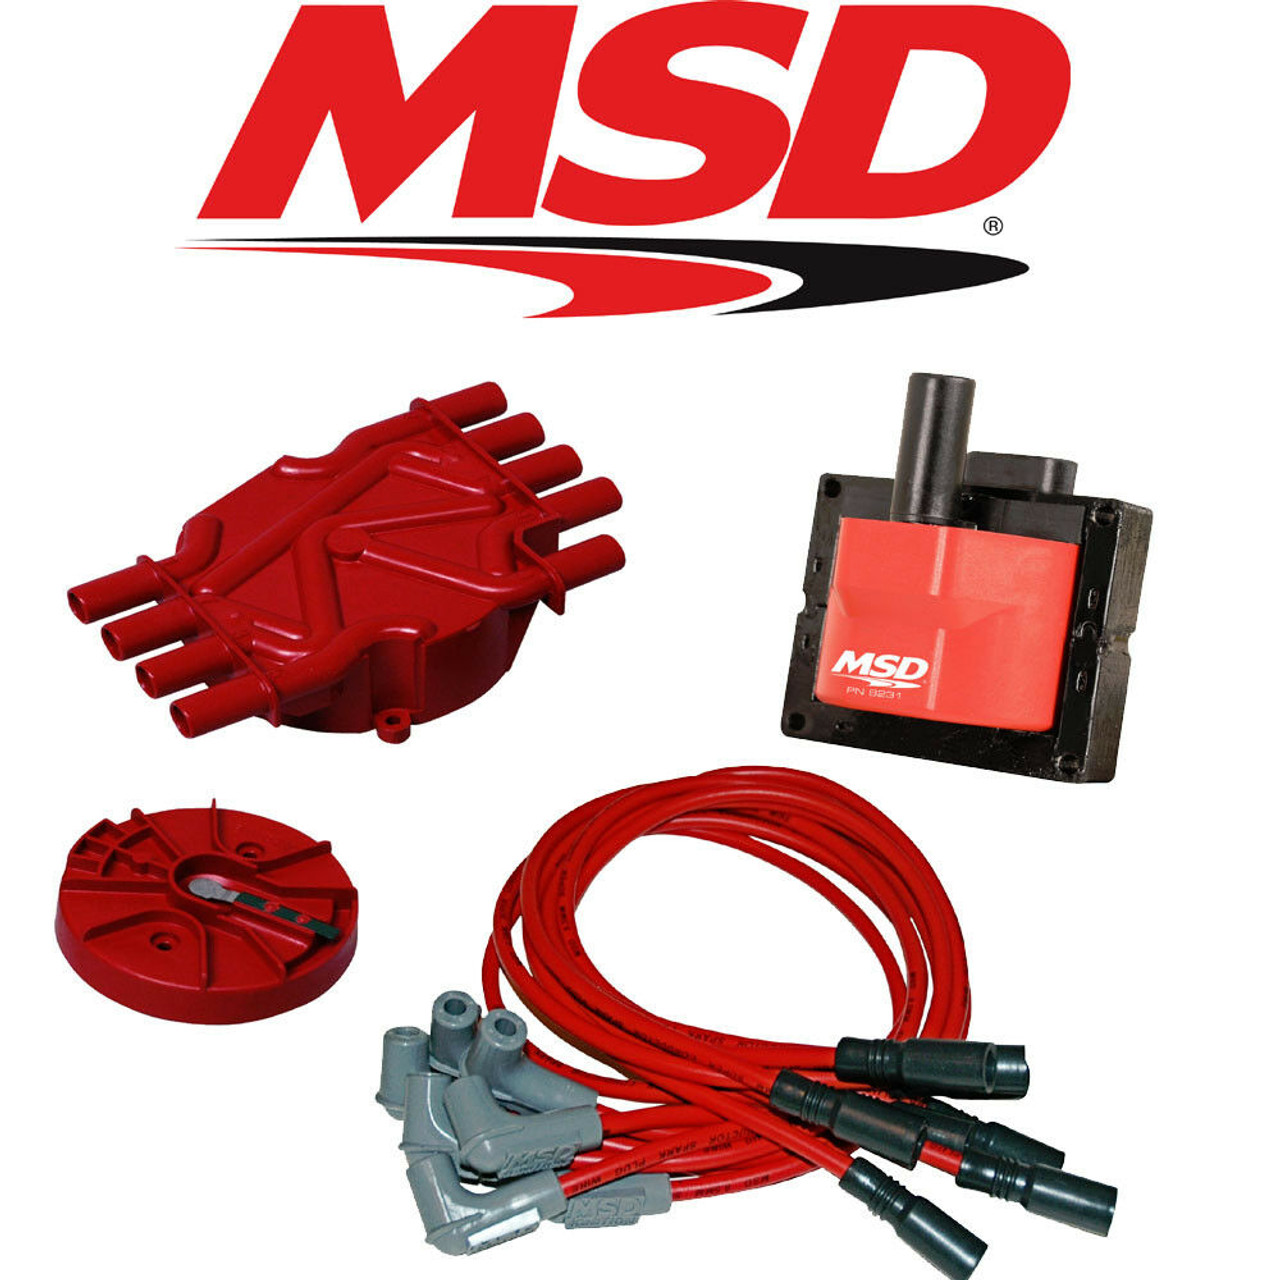 msd ignition tuneup kit 96 98 chevy gmc vortec 5 0 5 7l cap rotor coils wires